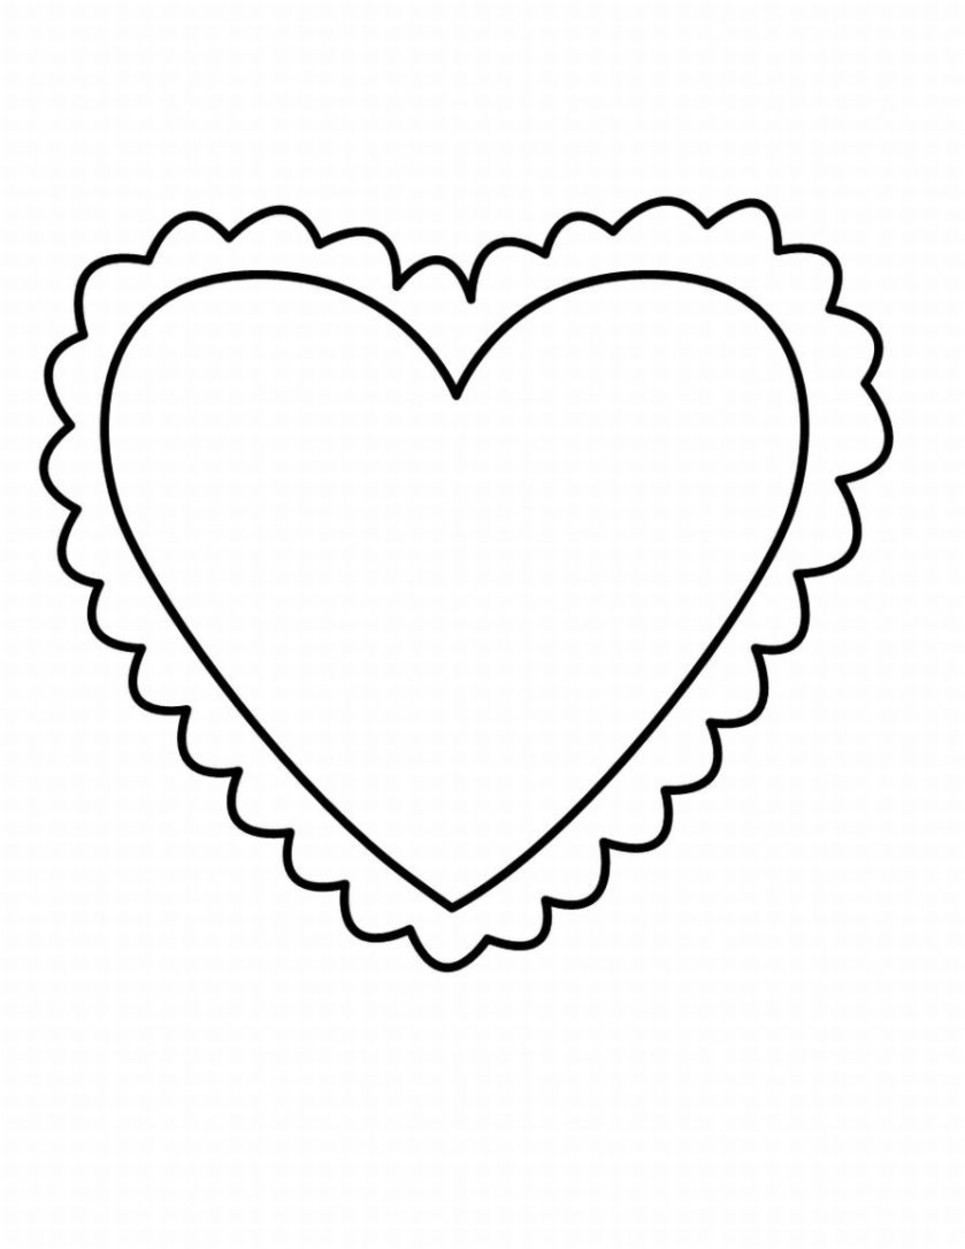 coloring heart for kids pictures of hearts to color and print wallpapers gallery kids for coloring heart